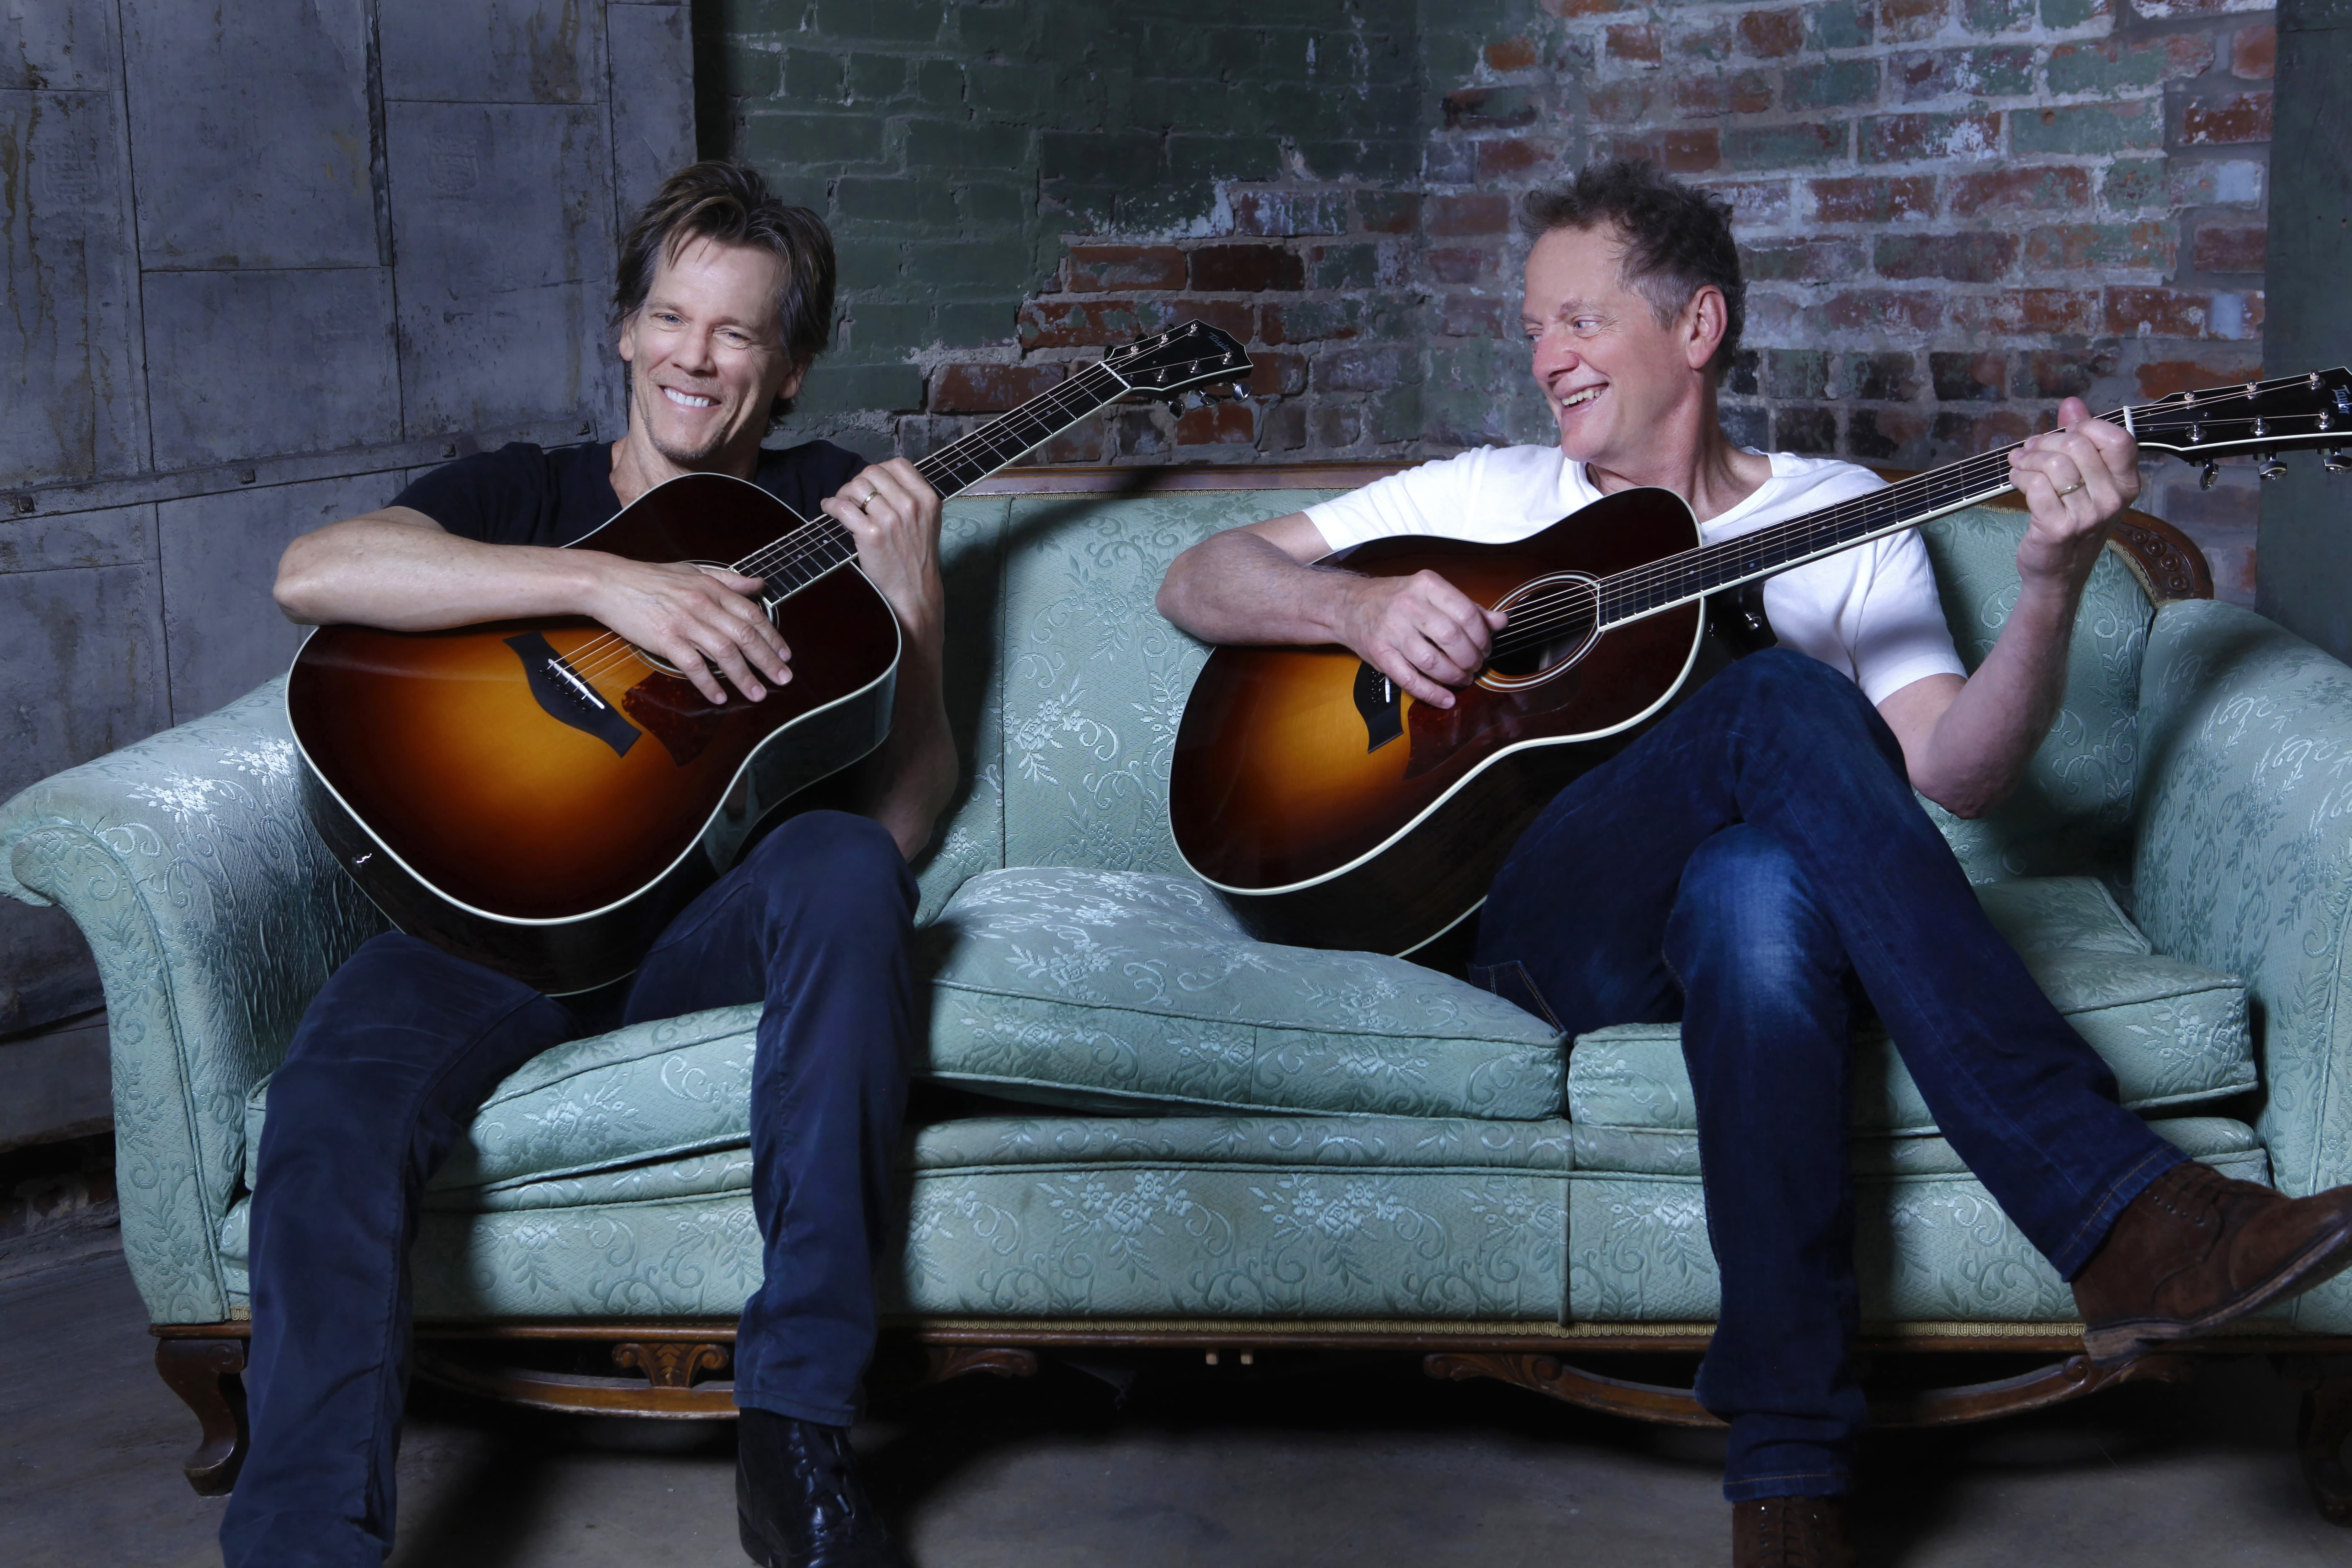 A Q&A with The Bacon Brothers ahead of their performance in Franklin